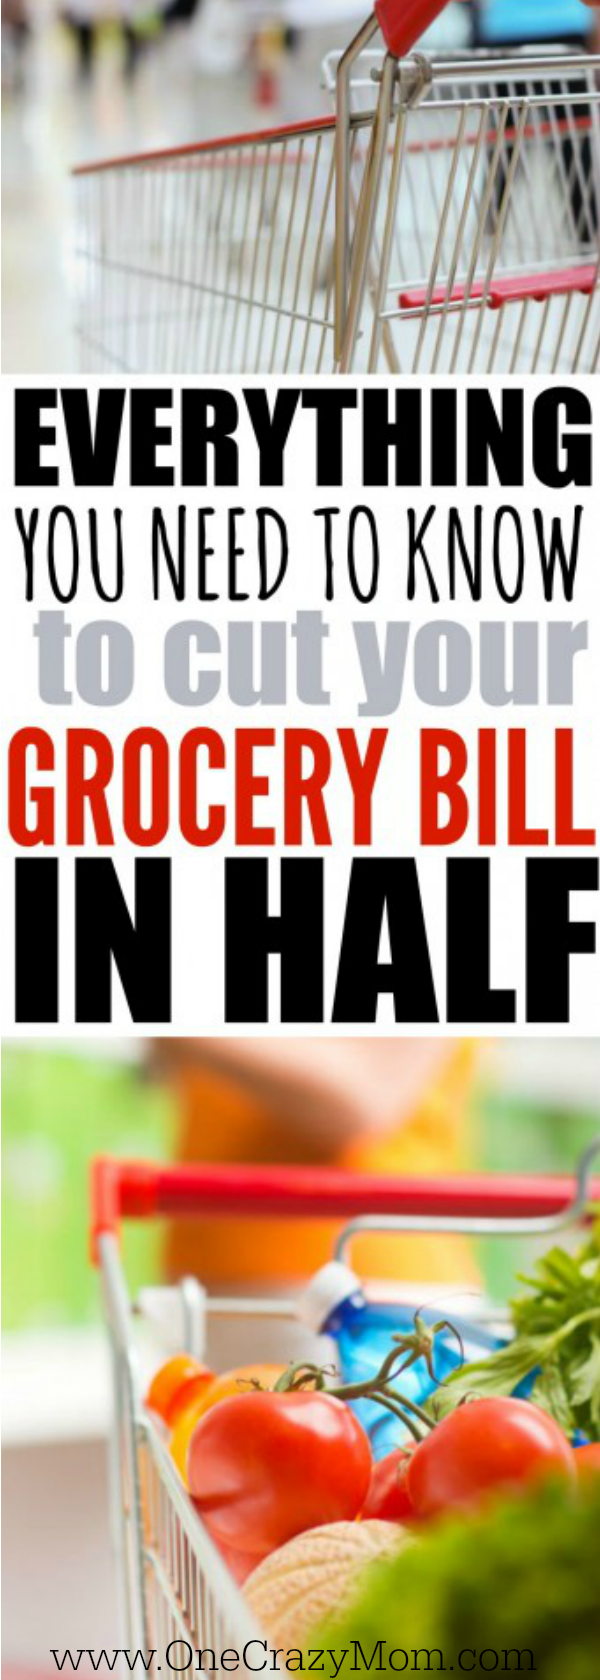 Learn How to save money on groceries by menu planning! These tips will help you save money on groceries by menu planning and using a meal planner. Once you know how to save money on food by meal planning, it is so easy!